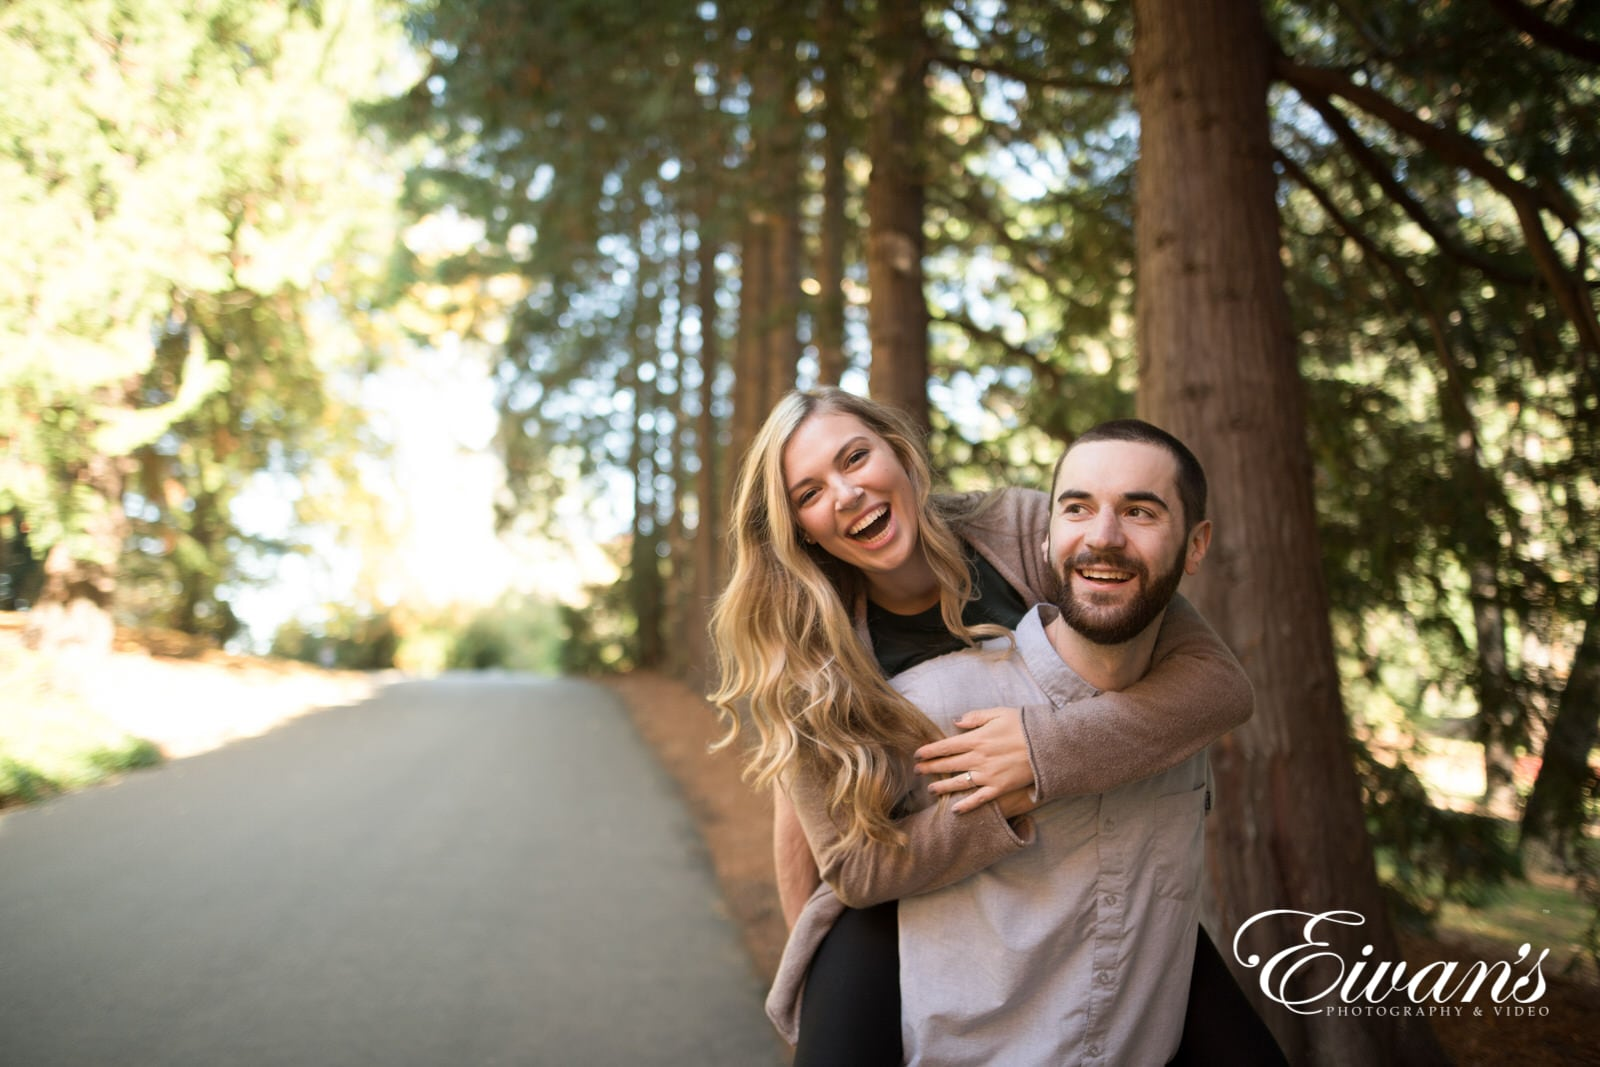 Image of an engaged couple in the woods